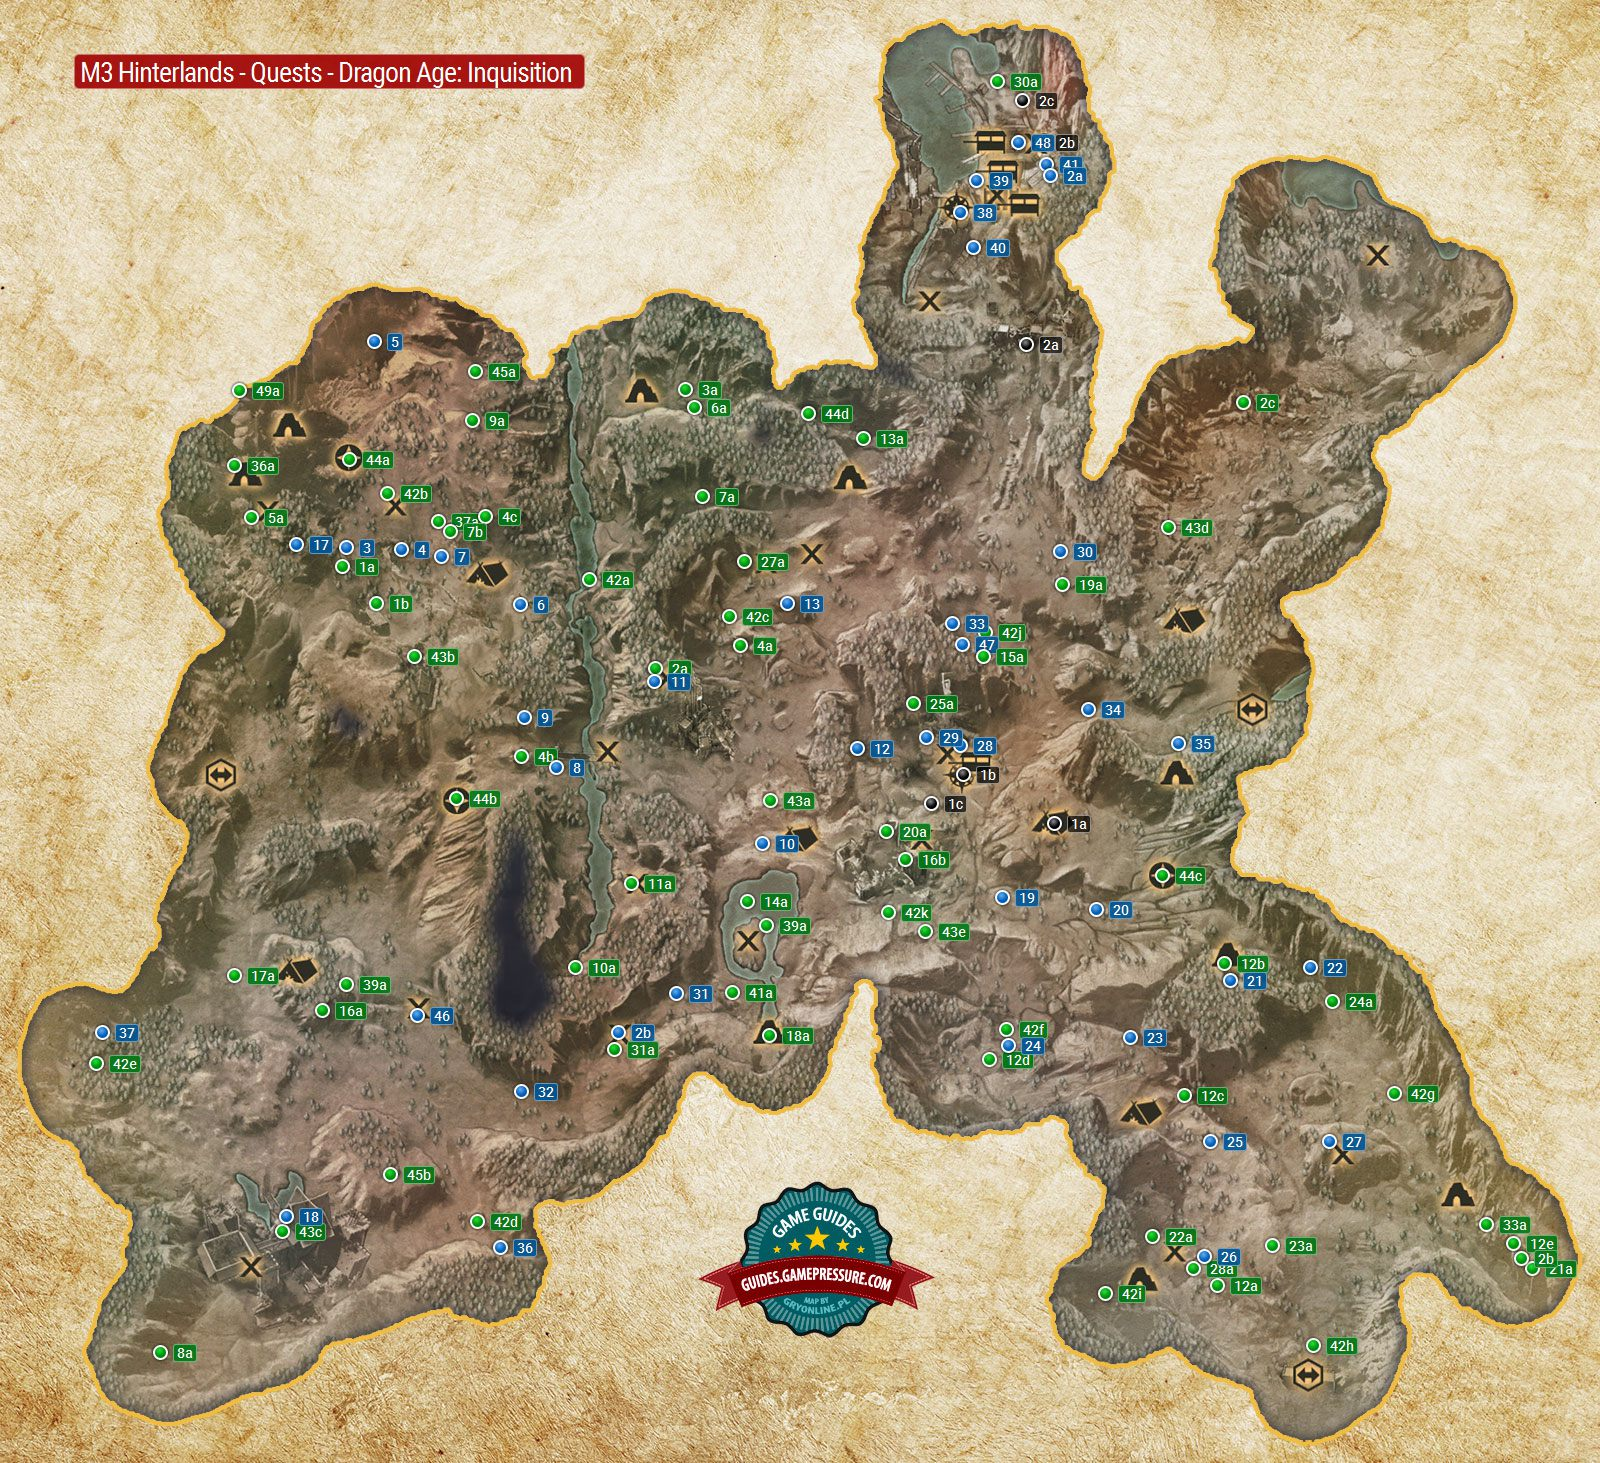 Dragon Age Map M3 The Hinterlands Quest Map   Dragon Age: Inquisition Game Guide